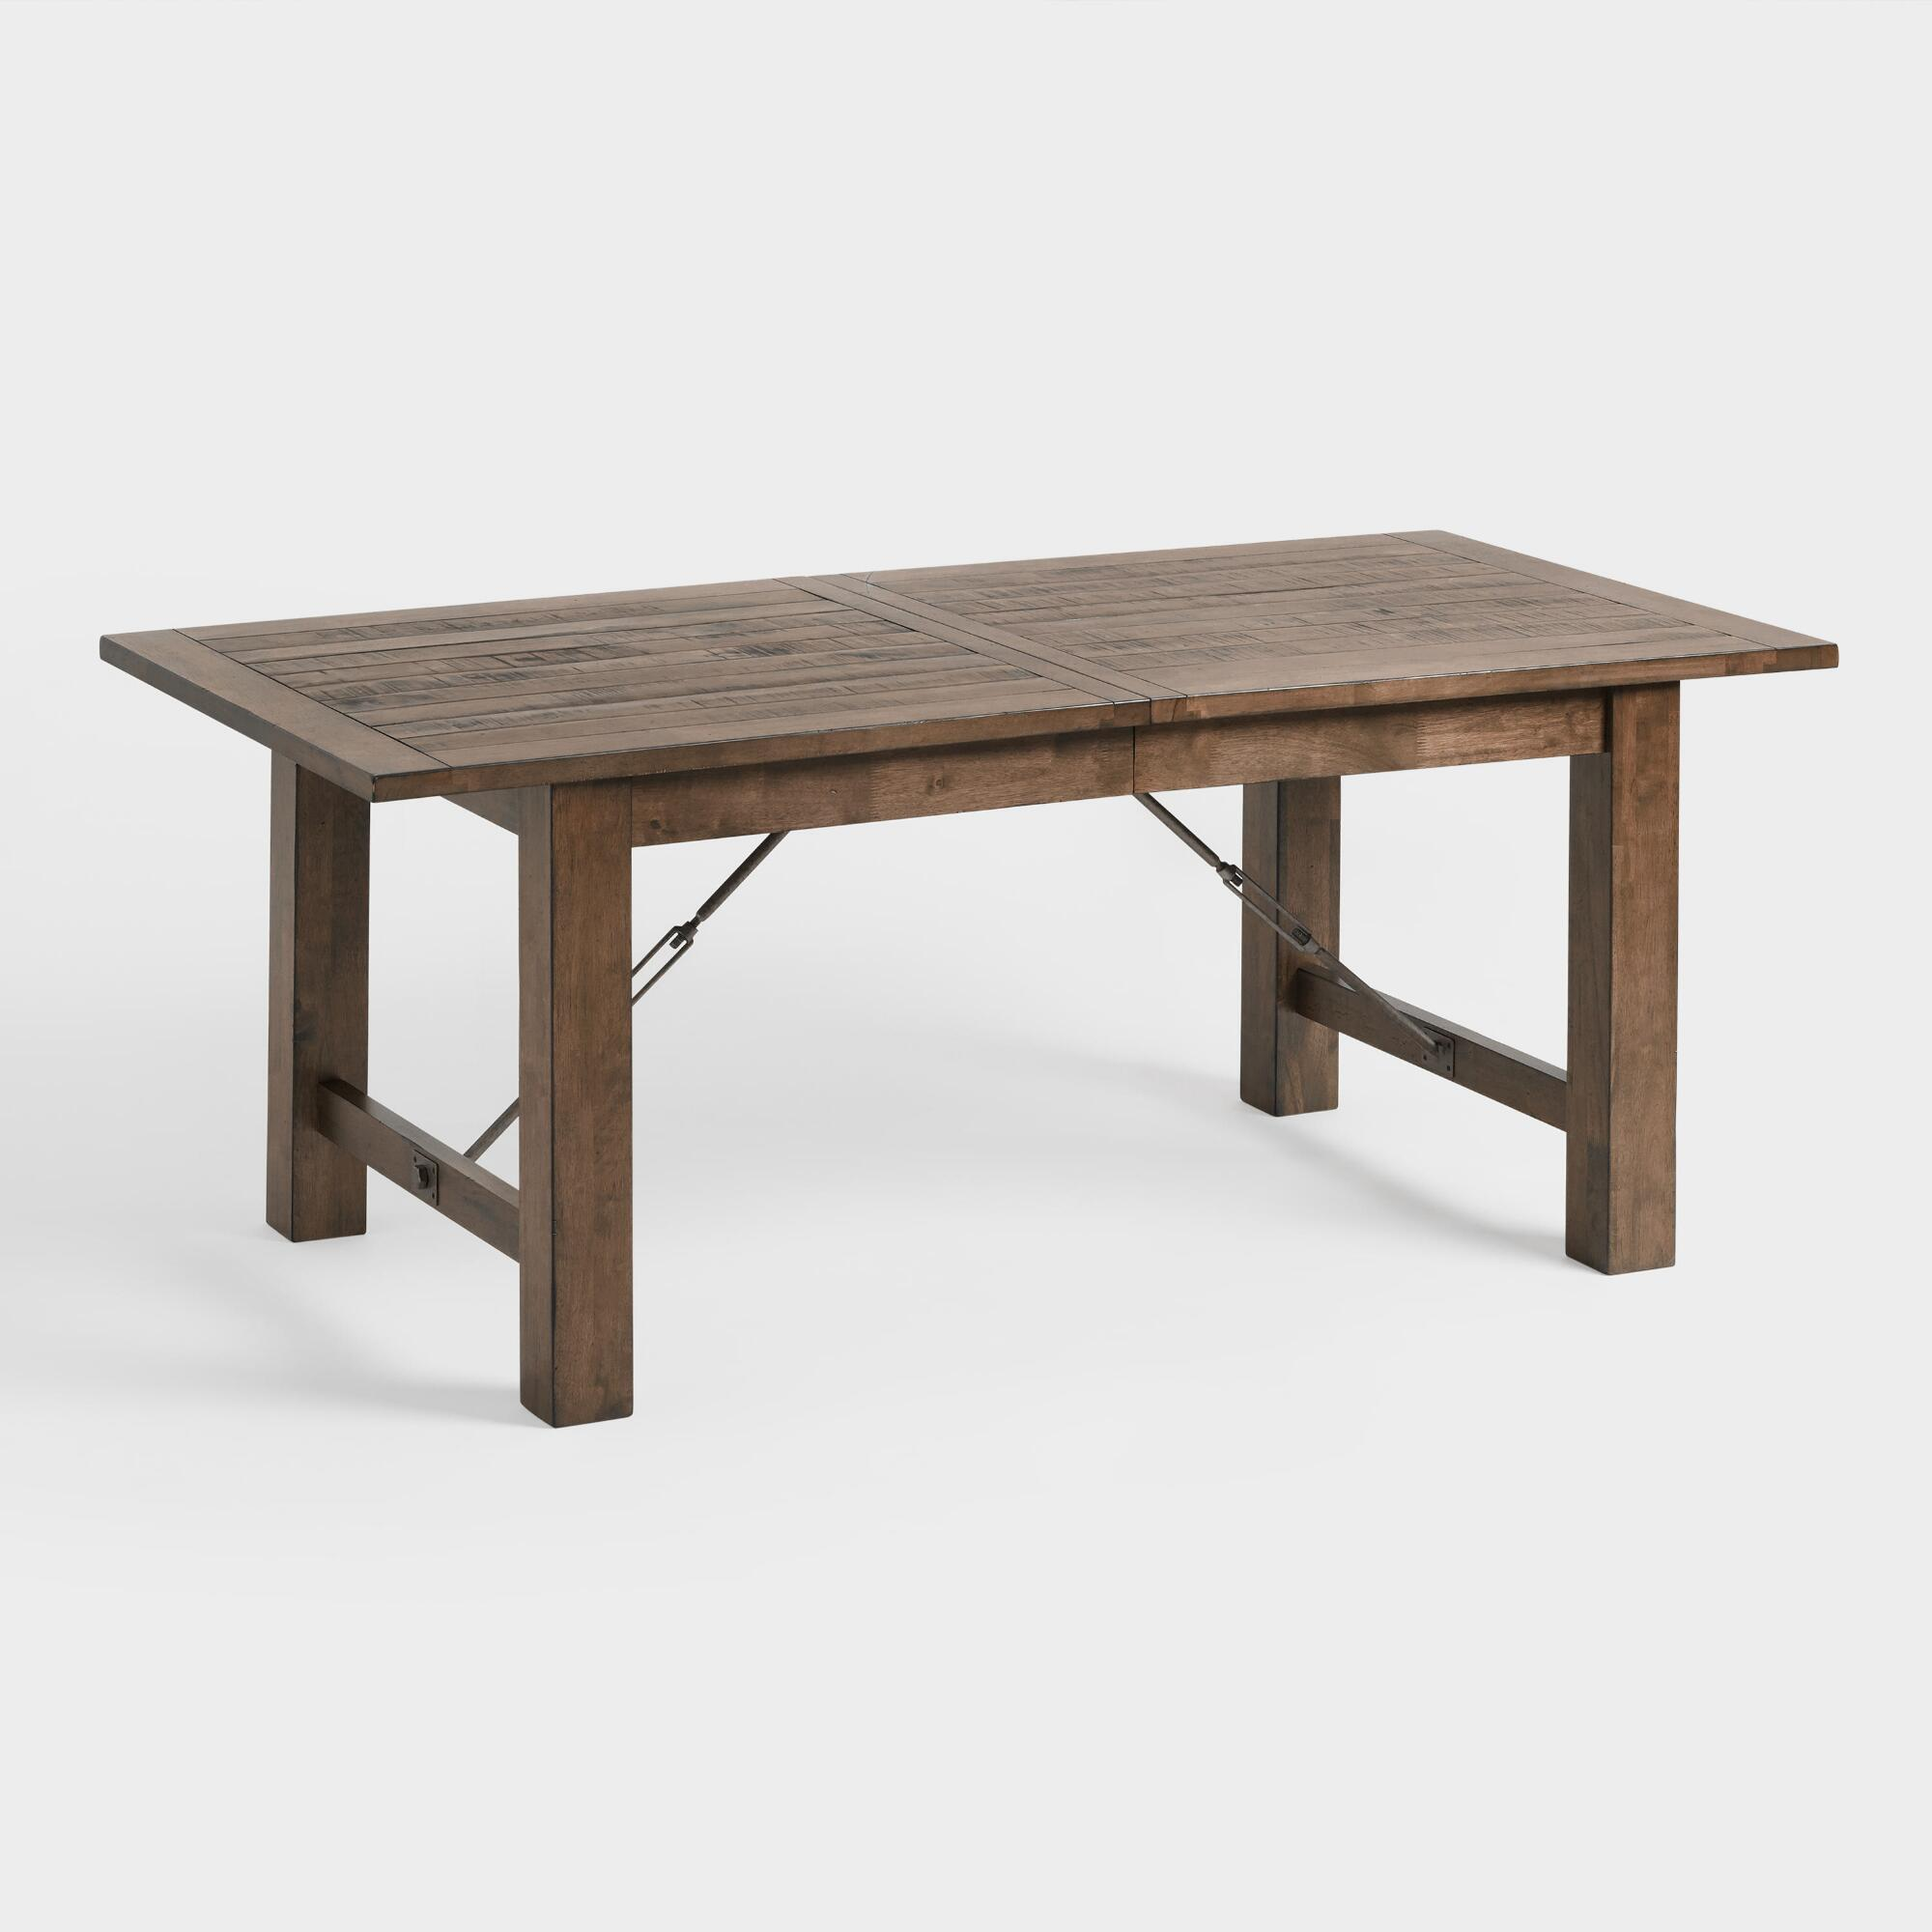 live tables great kitchen on each best long smaller benches walnut table have images a idea instead pinterest edge side woodworking to pesenti of one wood oliv dining slab